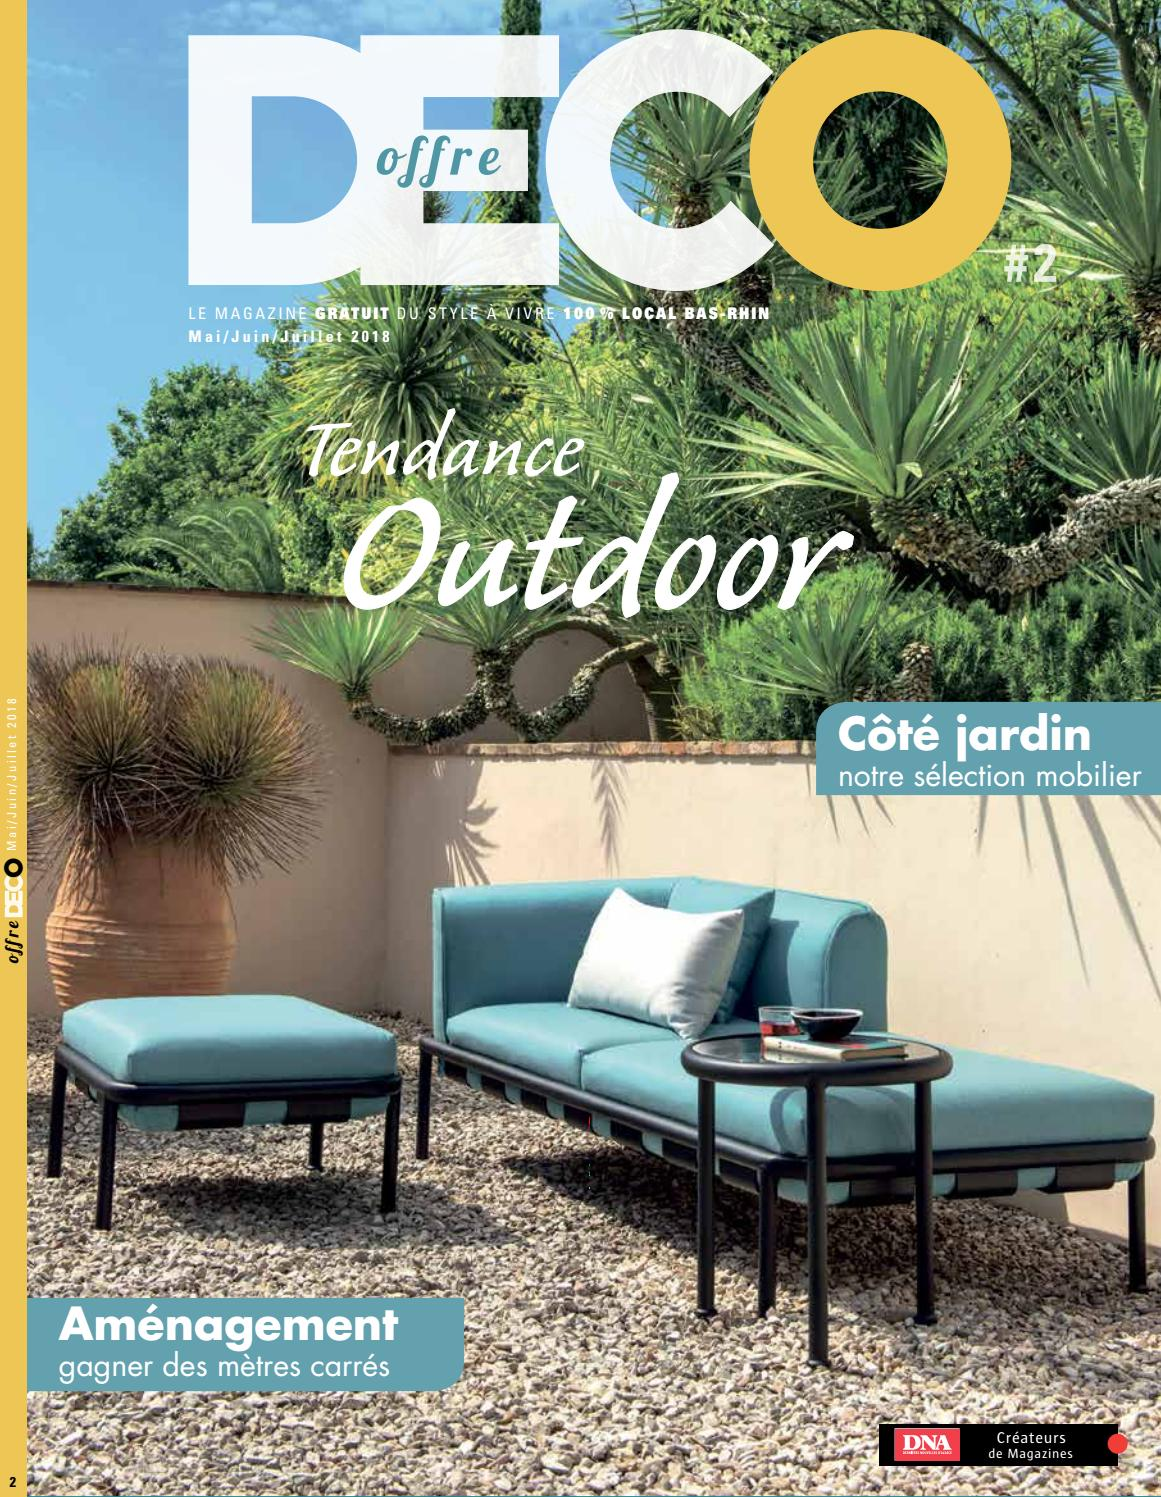 Salon Jardin Rotin Best Of Fre Déco 67 2 by Jfleury67 issuu Of 35 Best Of Salon Jardin Rotin